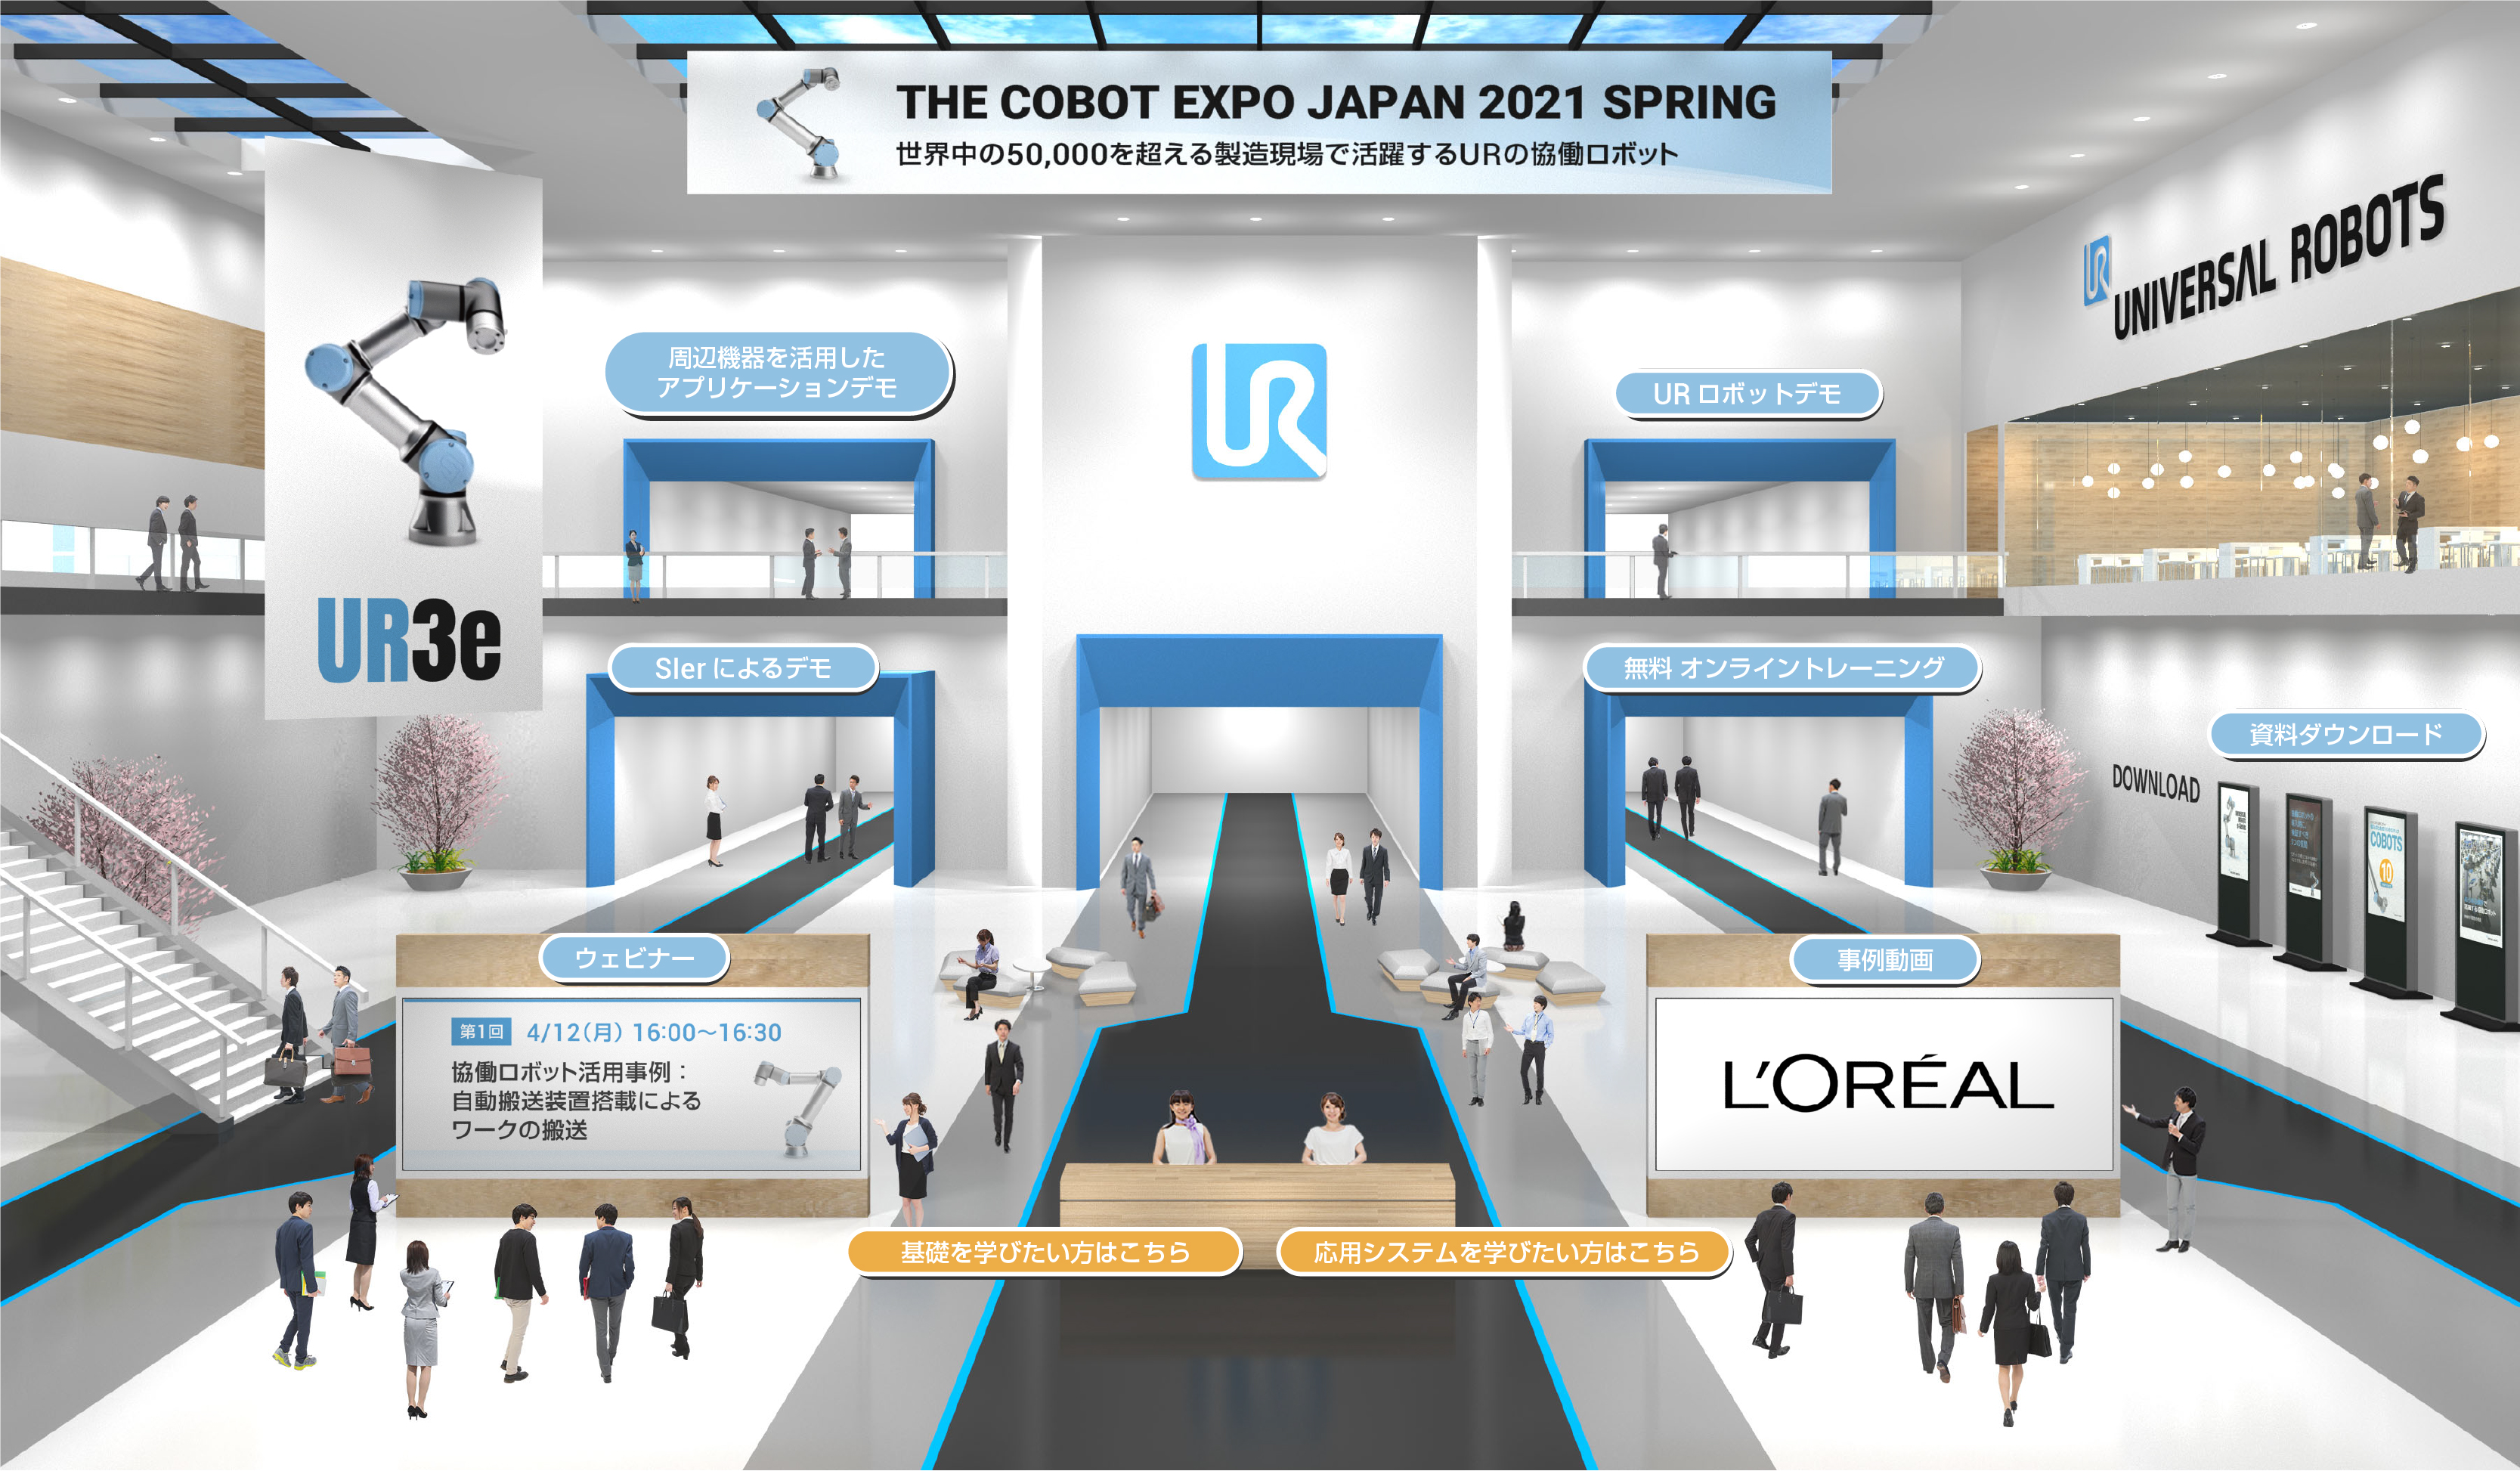 THE COBOT EXPO JAPAN 2021 SPRING